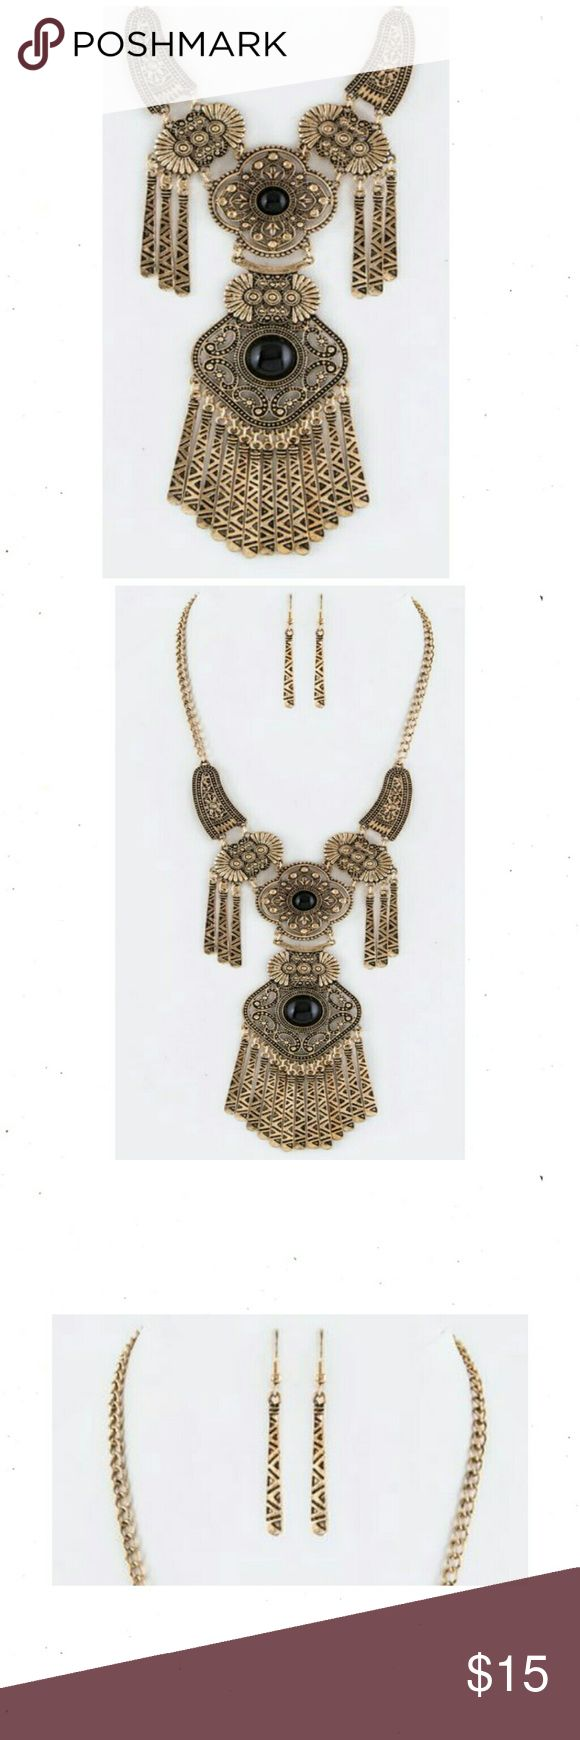 """Boho Fringe Bars Necklace Set Antique Gold plated boho statement necklace and earring set with fringe bar accent.  Necklace L 18"""" with extension Earrings 2.4"""" Drop style Nickel and Lead compliant. NWT BohoBeauRoseBoutique Jewelry Necklaces"""